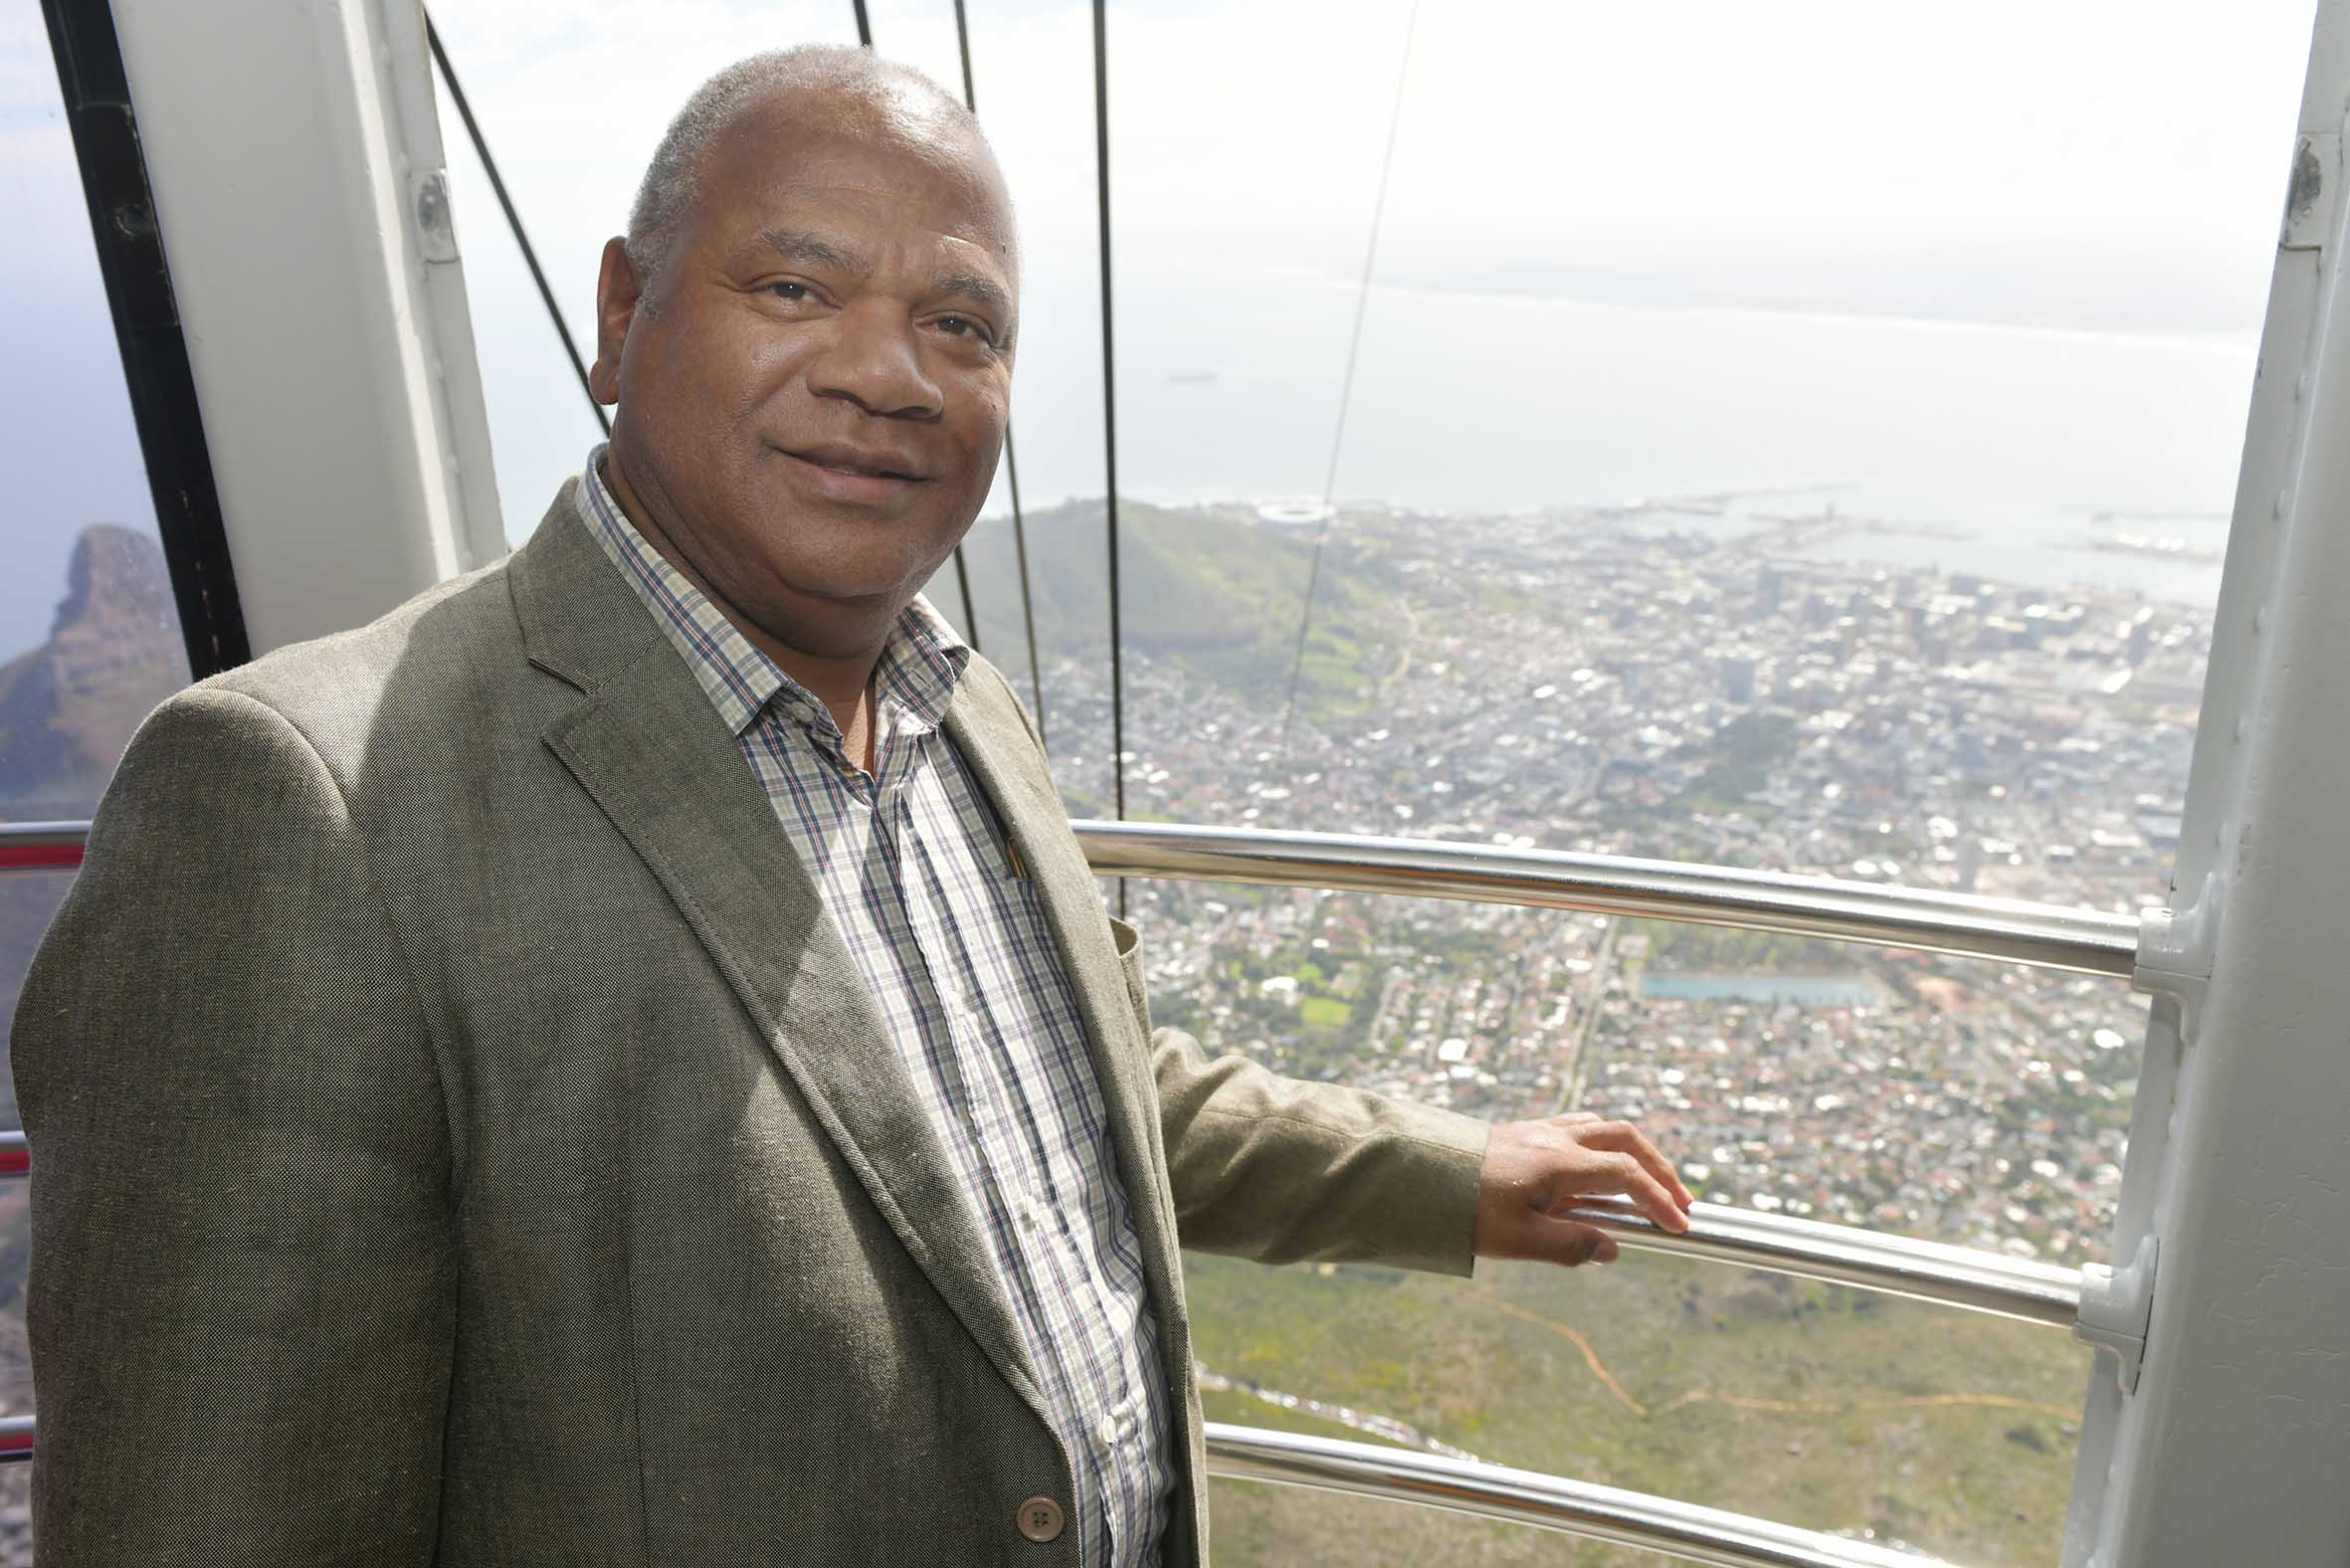 The Mayor of Cape Town congratulates Table Mountain Cableway on turning 90